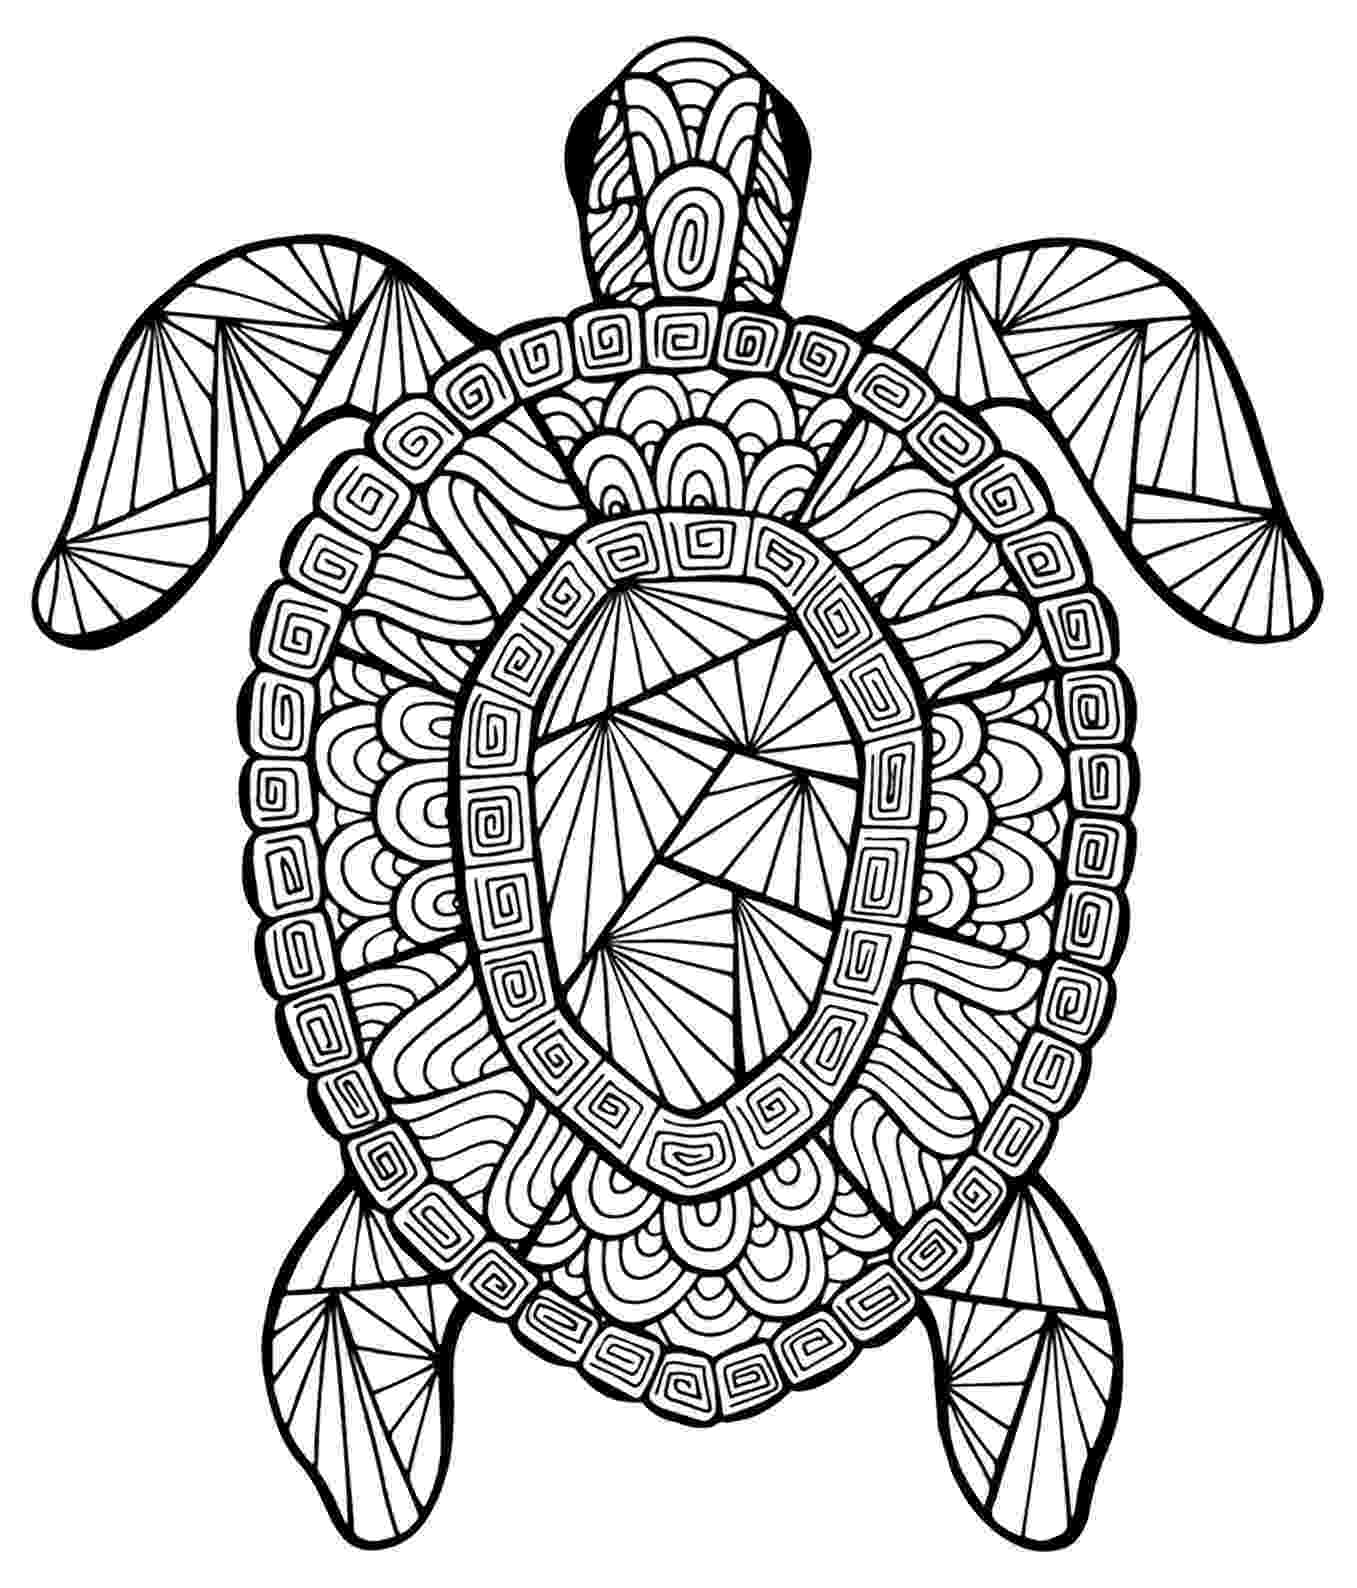 turtle pictures to color turtles to download turtles kids coloring pages color to turtle pictures